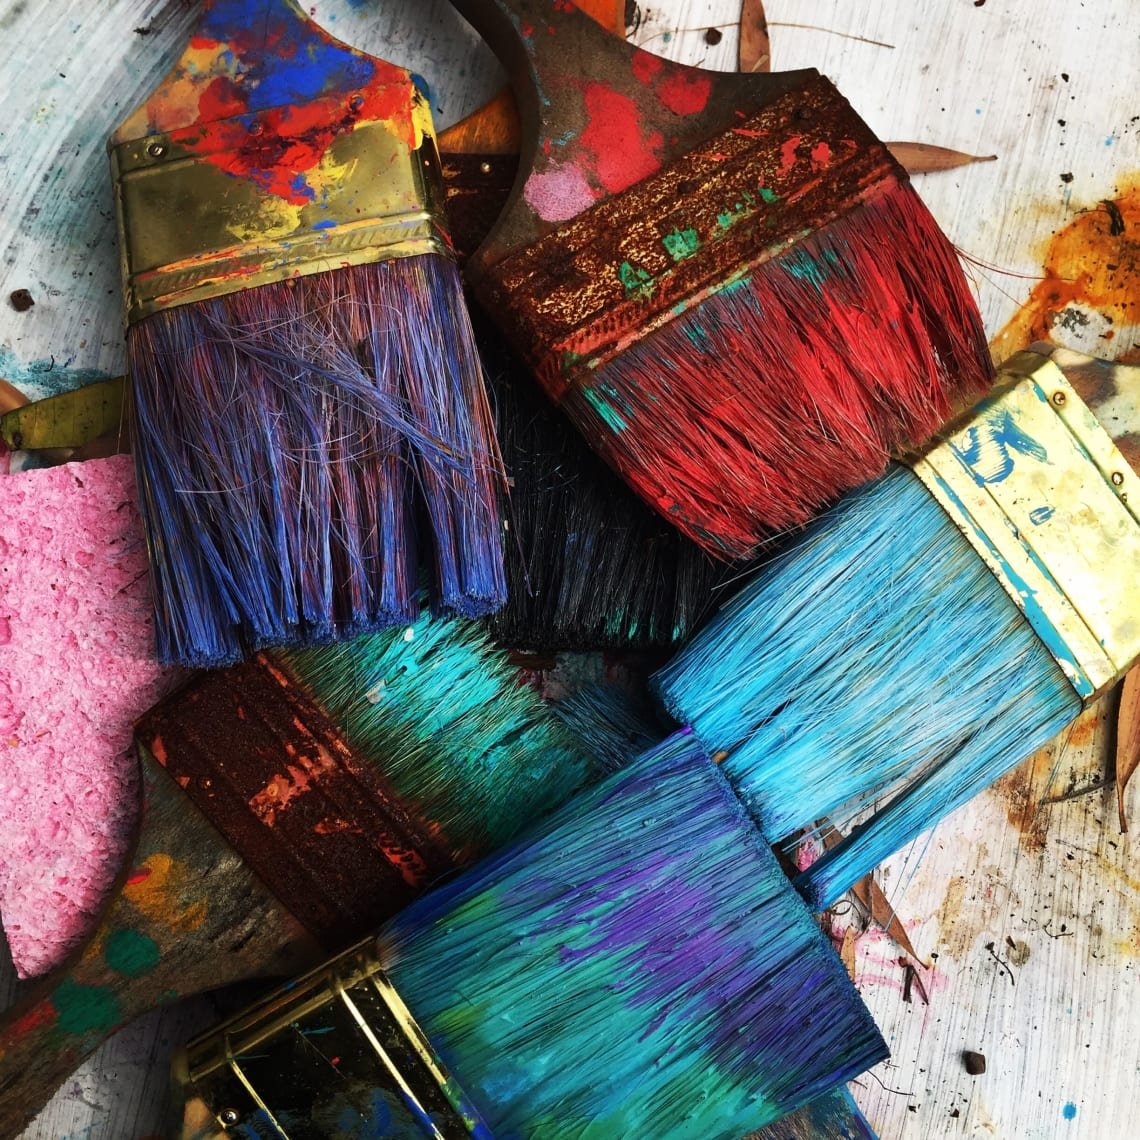 Ways to break out of a creative rut: do more of what you love